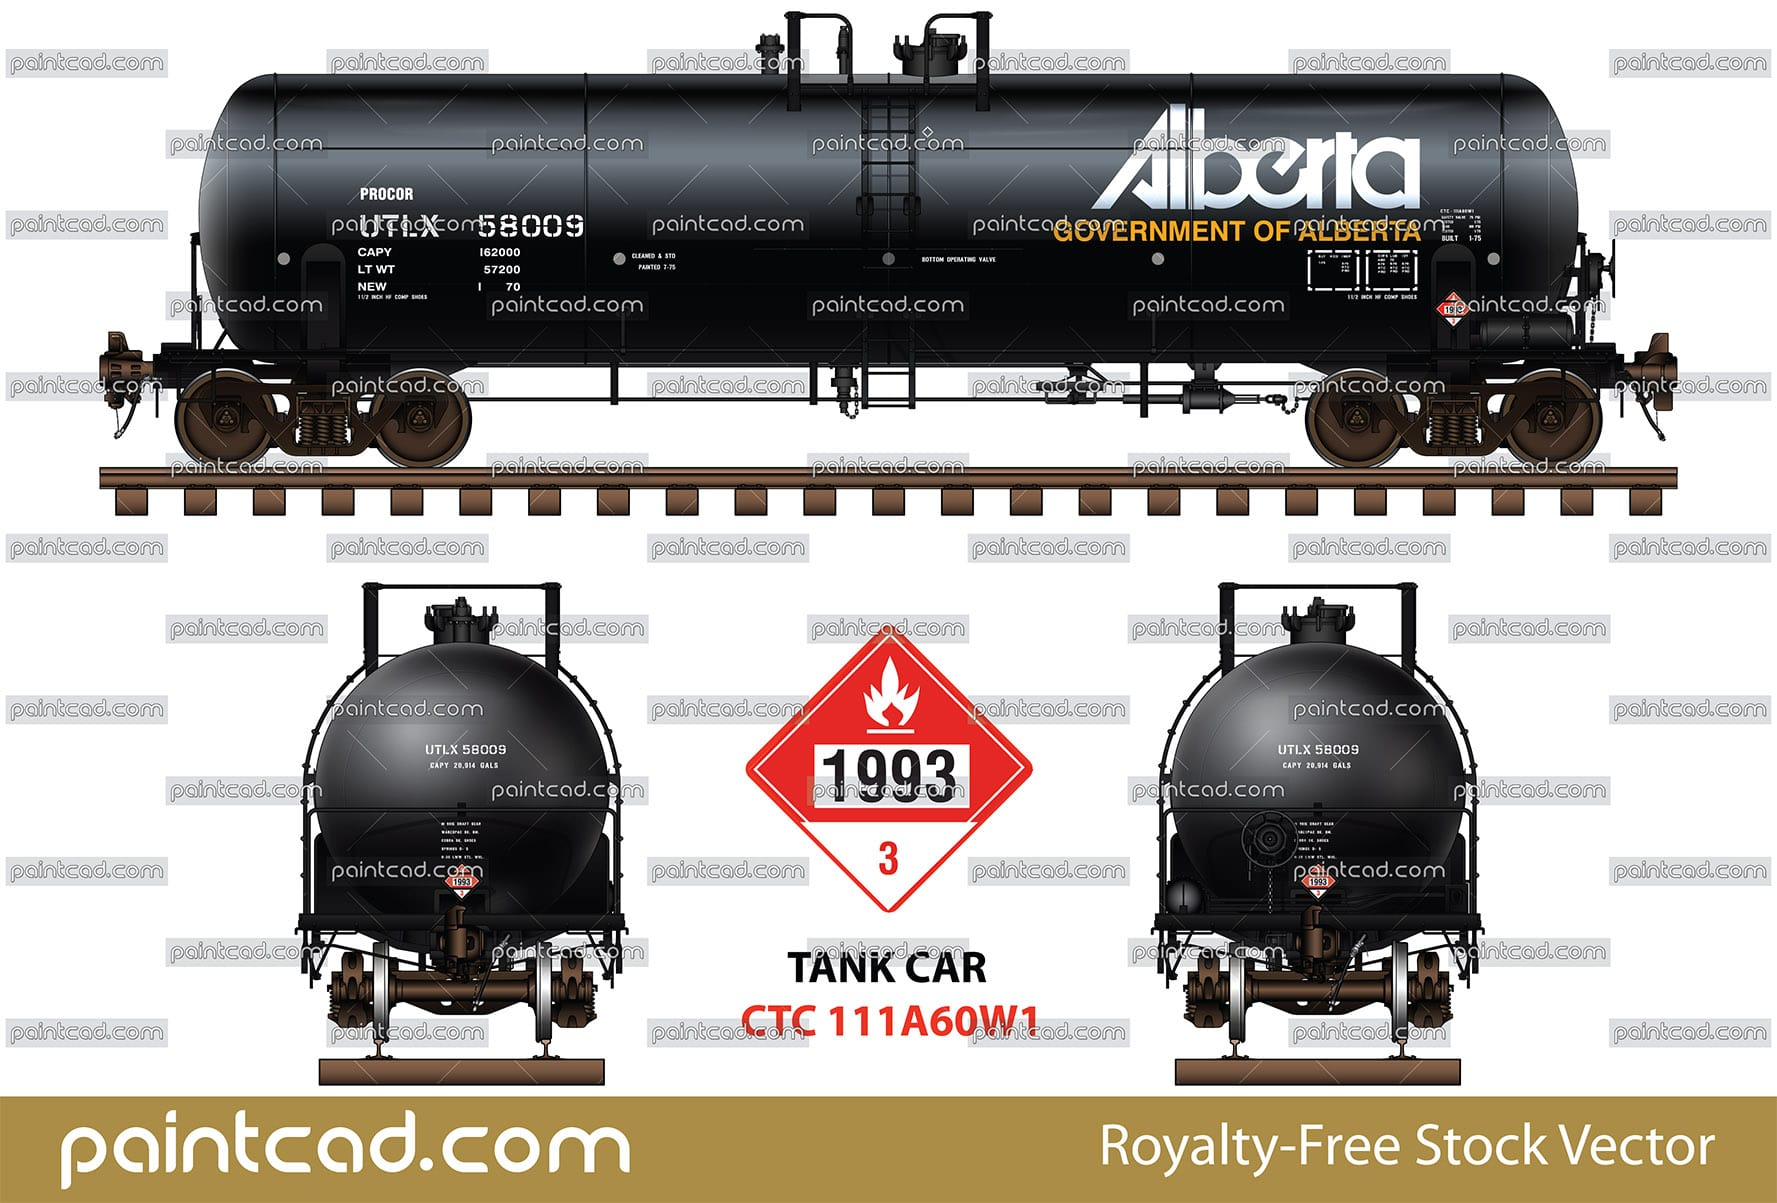 Procor UTLX tank car CTC - 111A60W1 by Government of Alberta - vector illustration